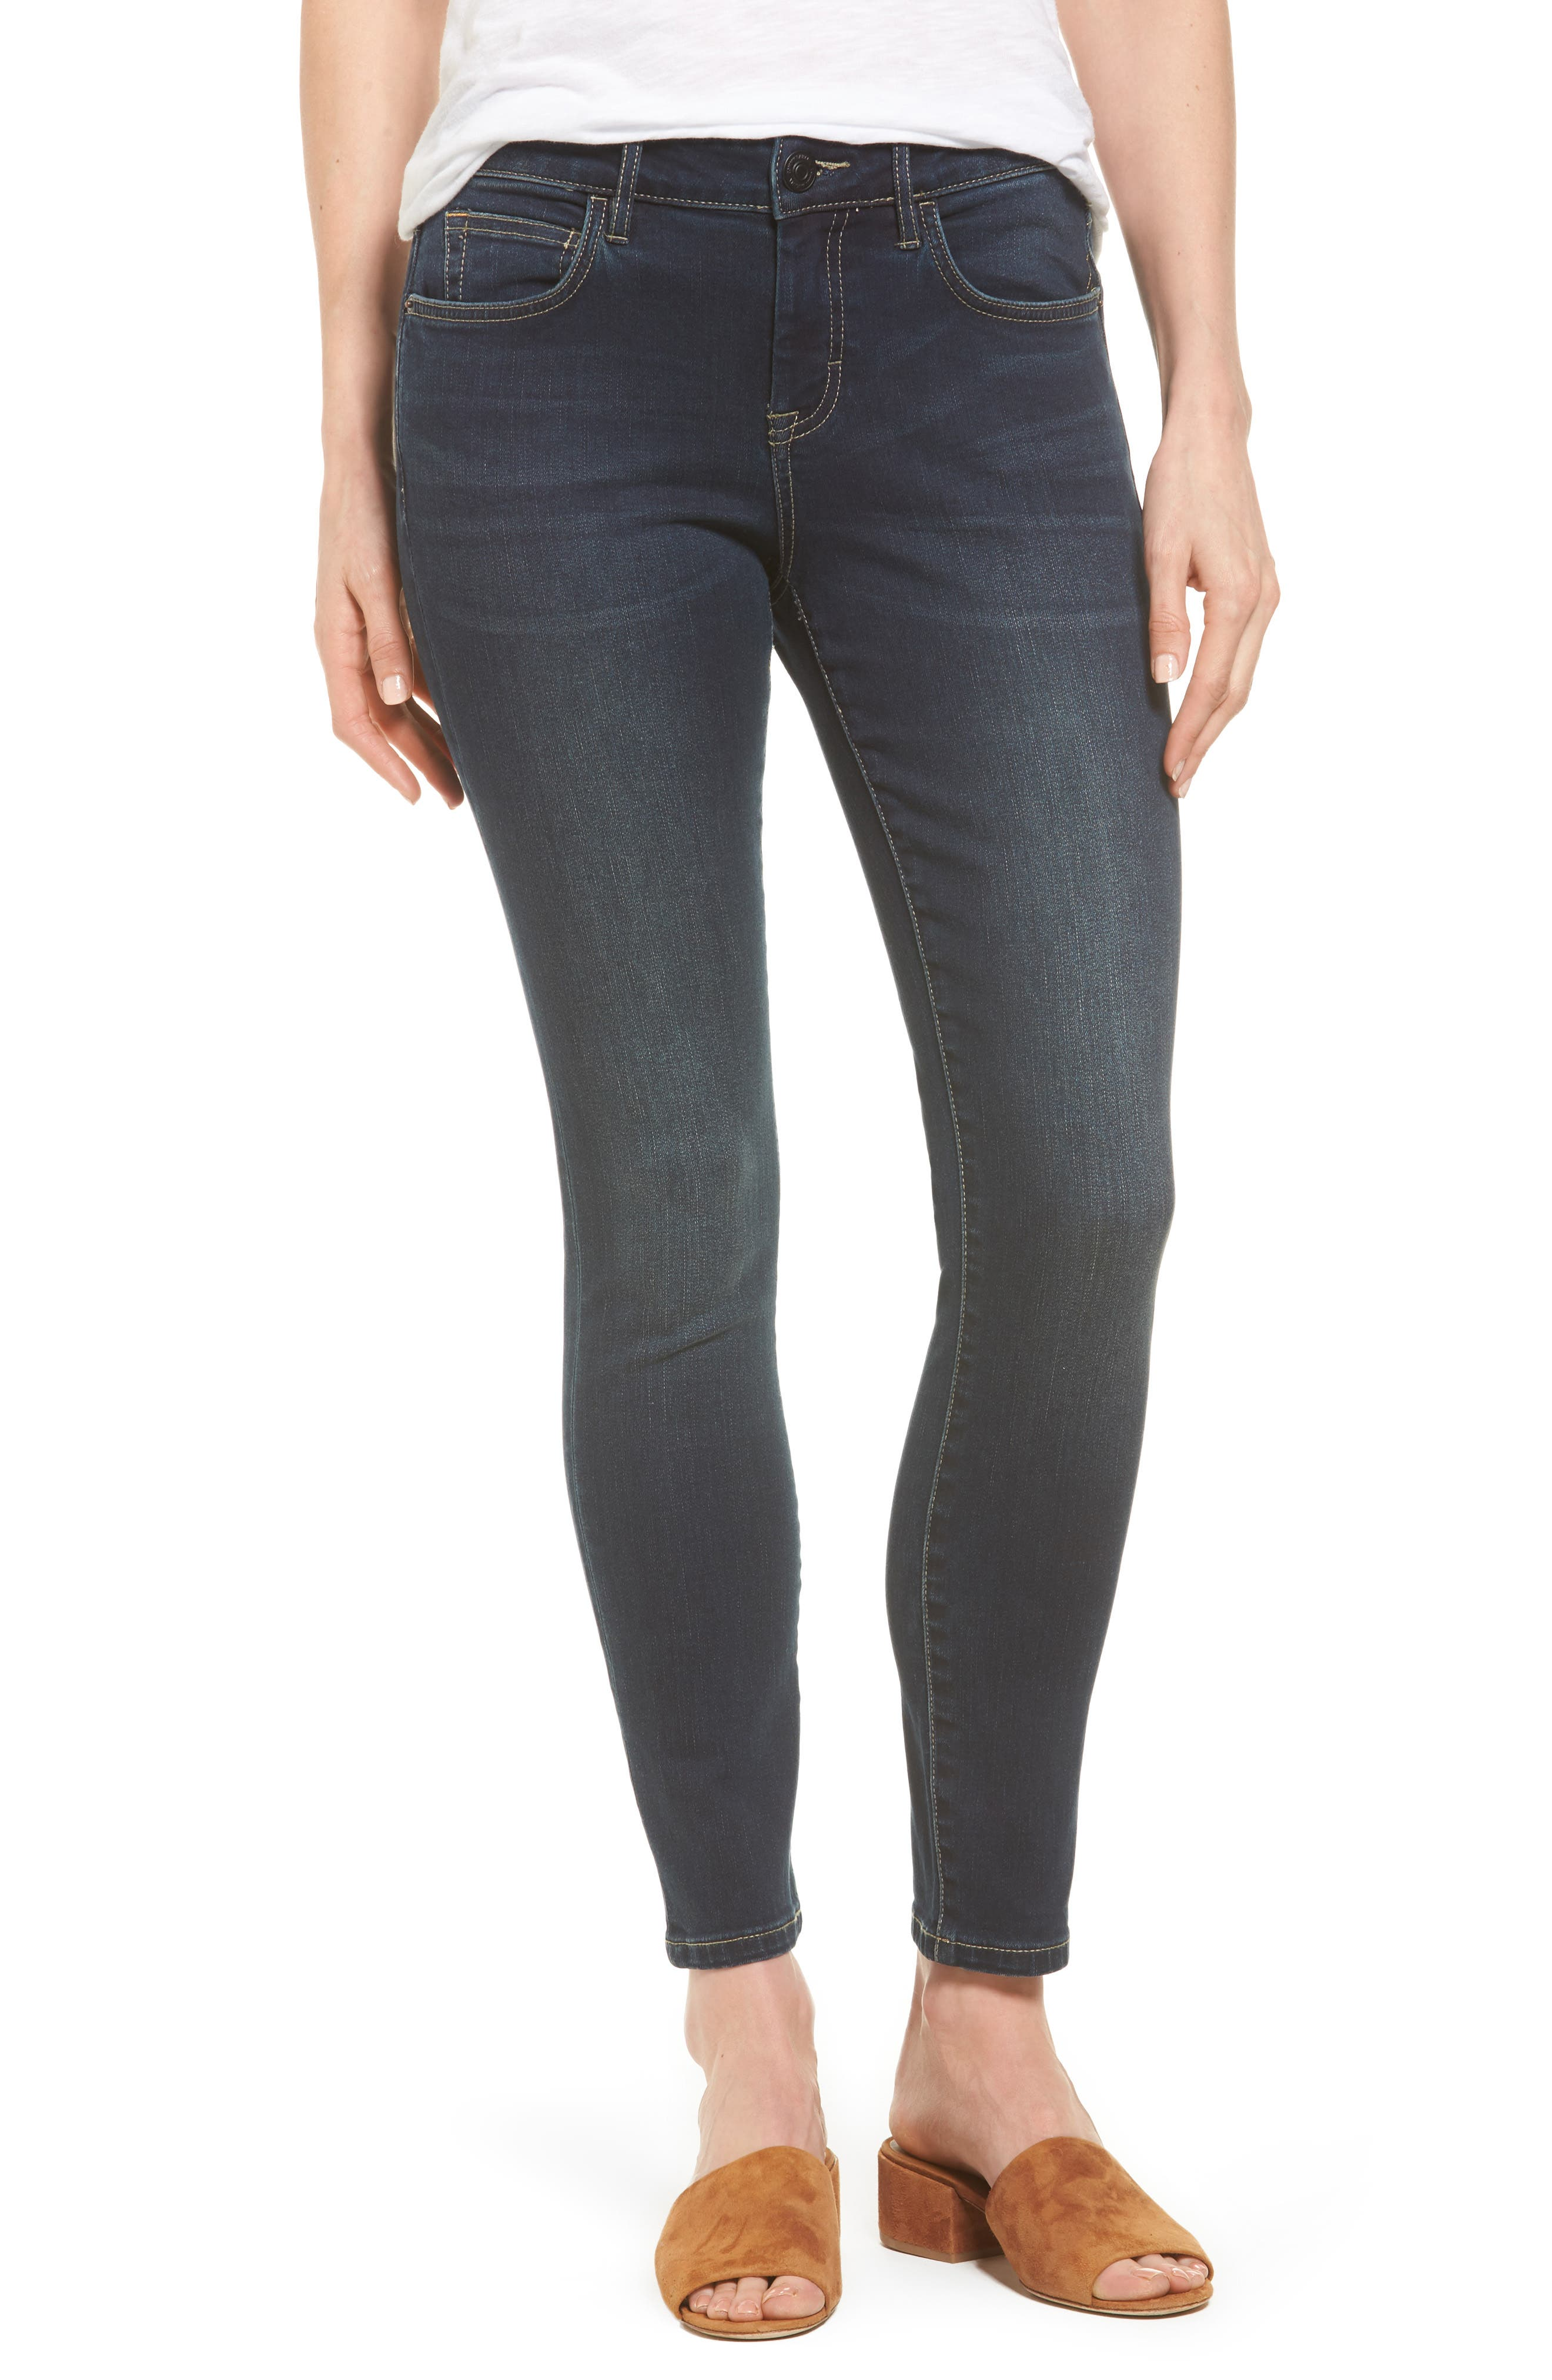 TOMMY BAHAMA, Tema Stretch Skinny Jeans, Main thumbnail 1, color, DARK OCEAN WASH